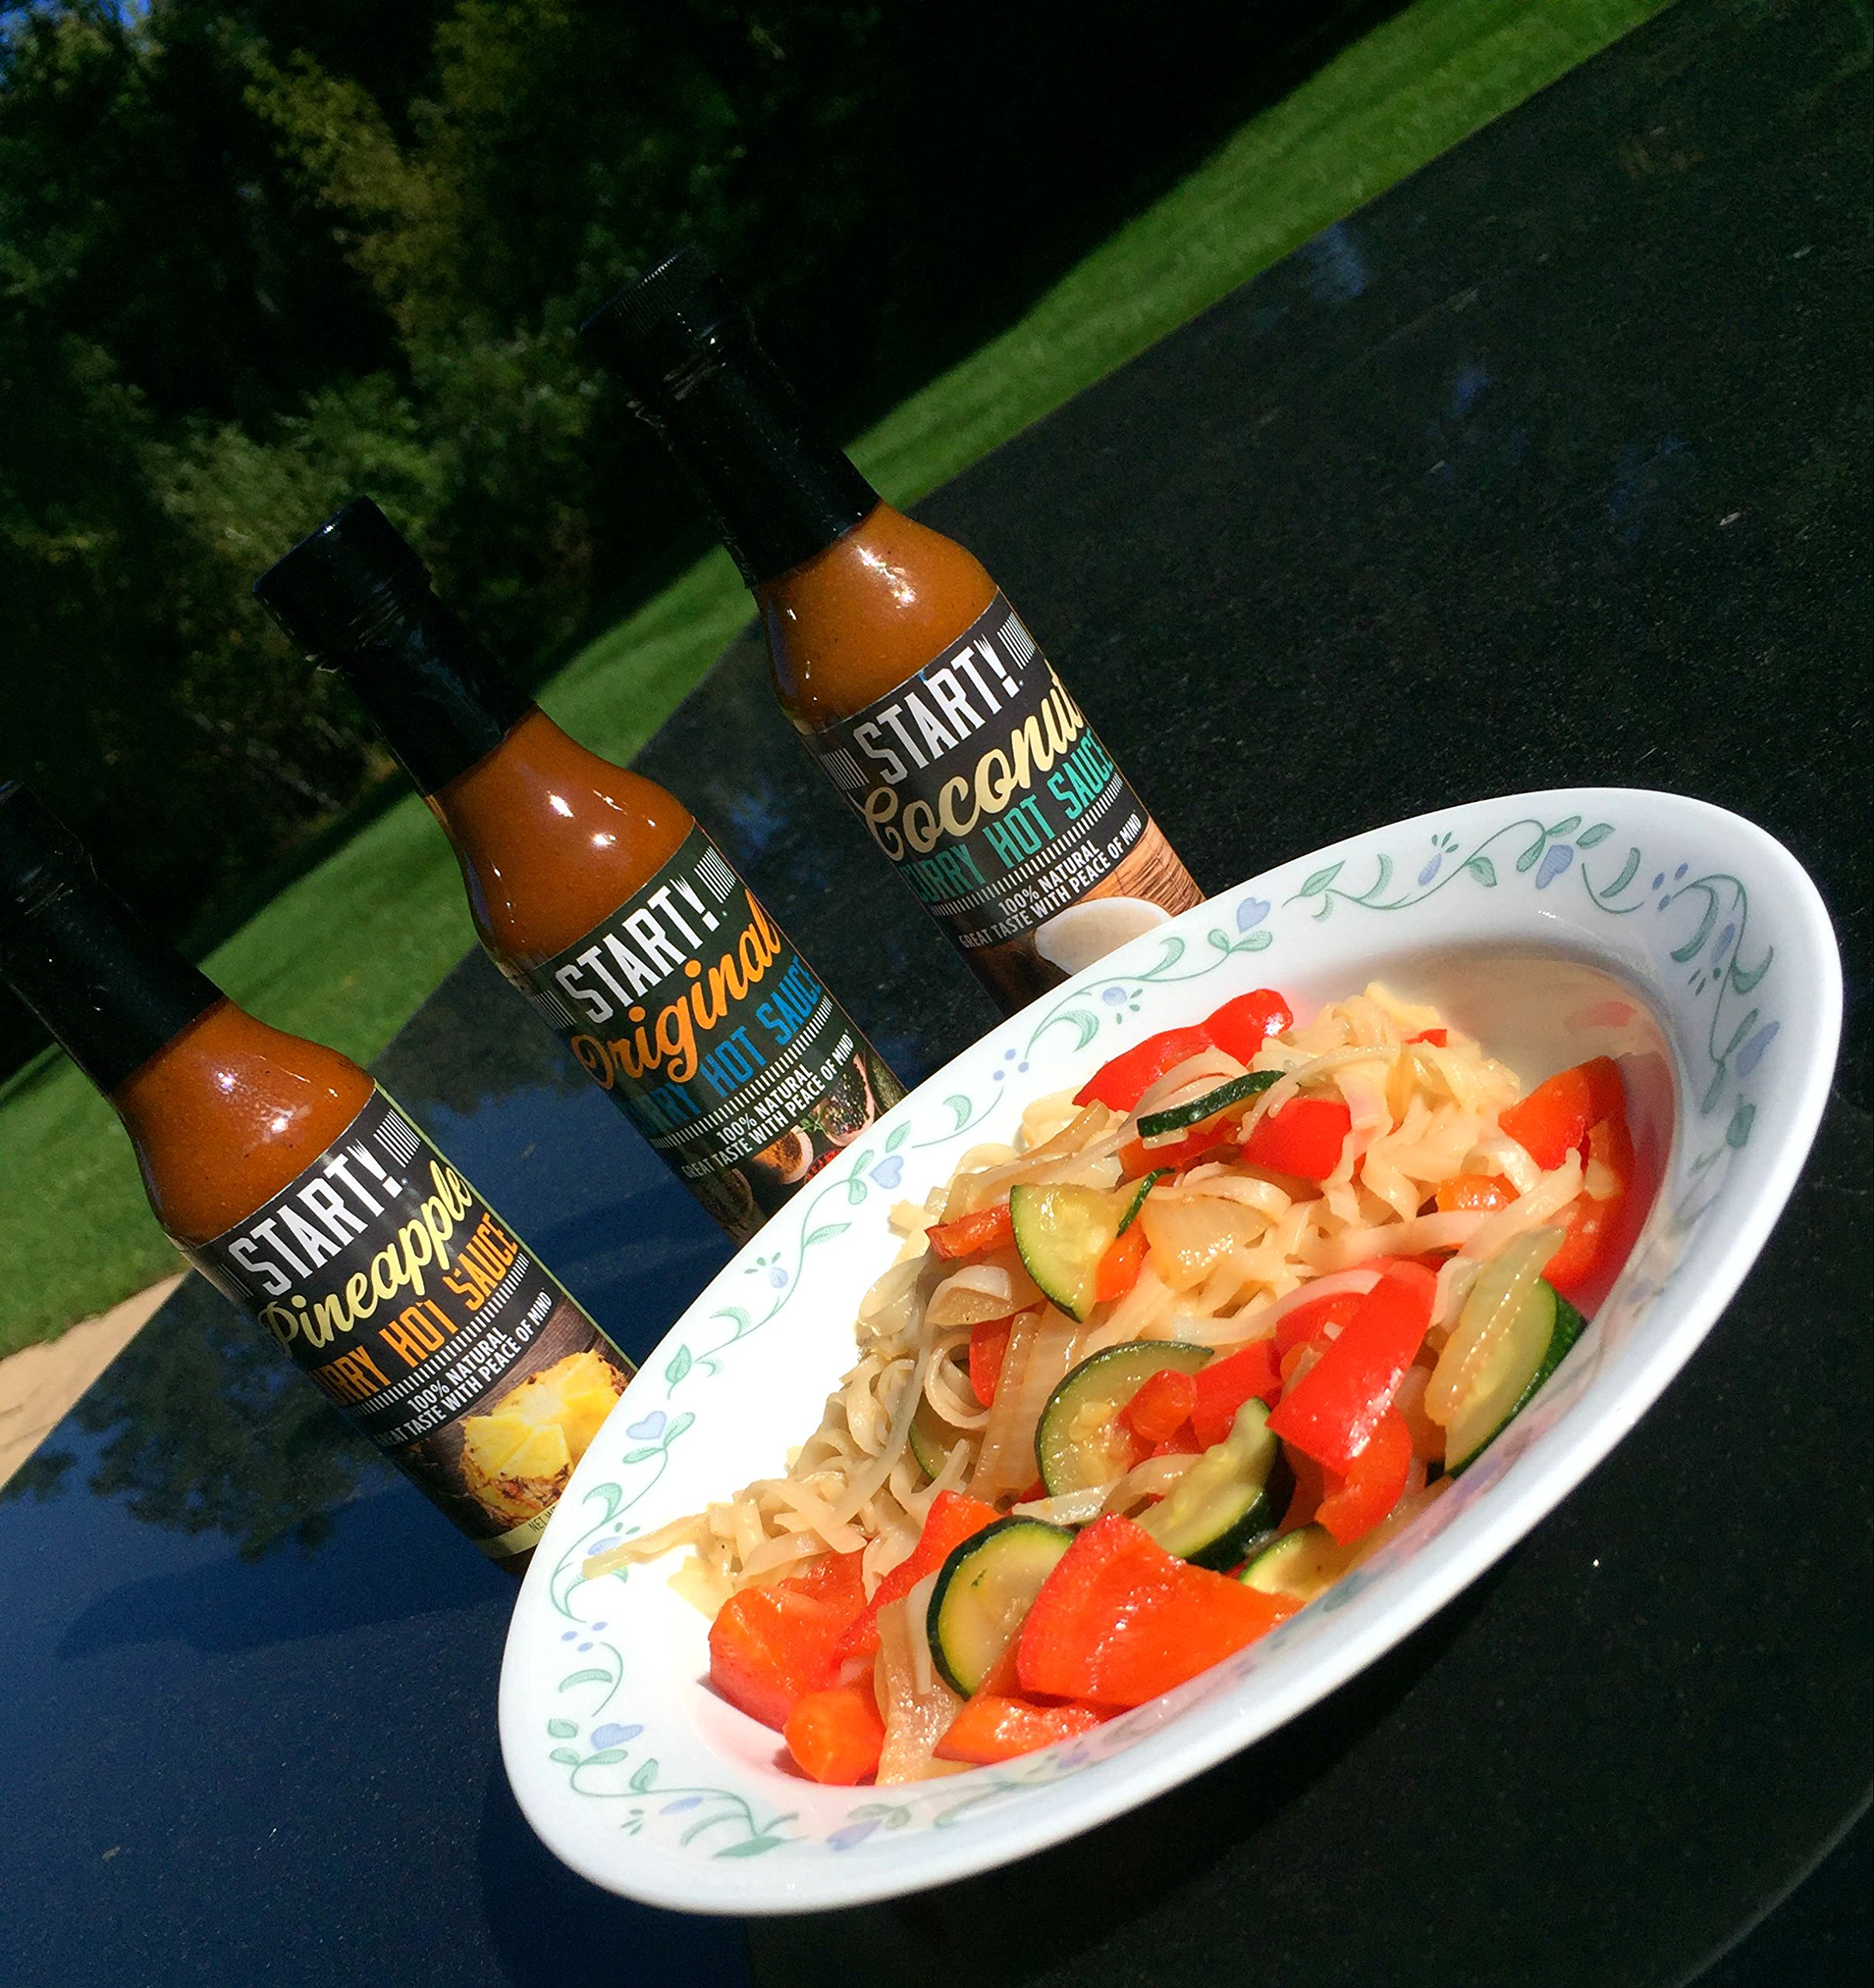 START! Curry Hot Sauce - Variety Sampler Party Pack - Original, Coconut, and Pineapple Flavors - Vegan + Gluten Free - Everyday Gourmet Light Spice (12 pack) by Start (Image #6)